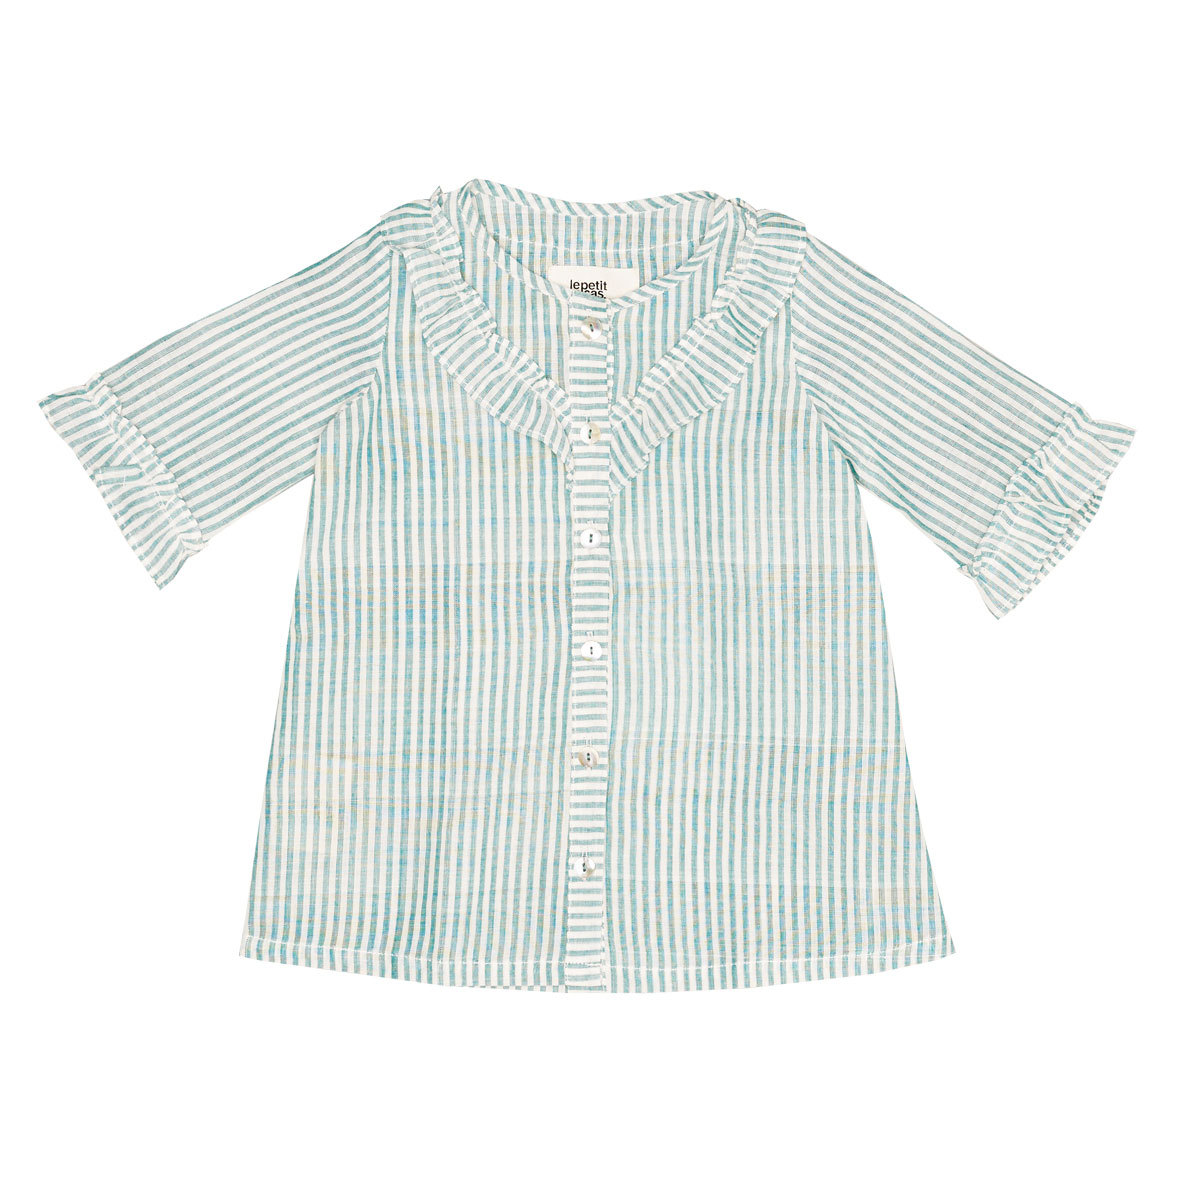 Hauts bébé Top Vanessa - Green Stripes - 3 Ans Top Vanessa - Green Stripes - 3 Ans